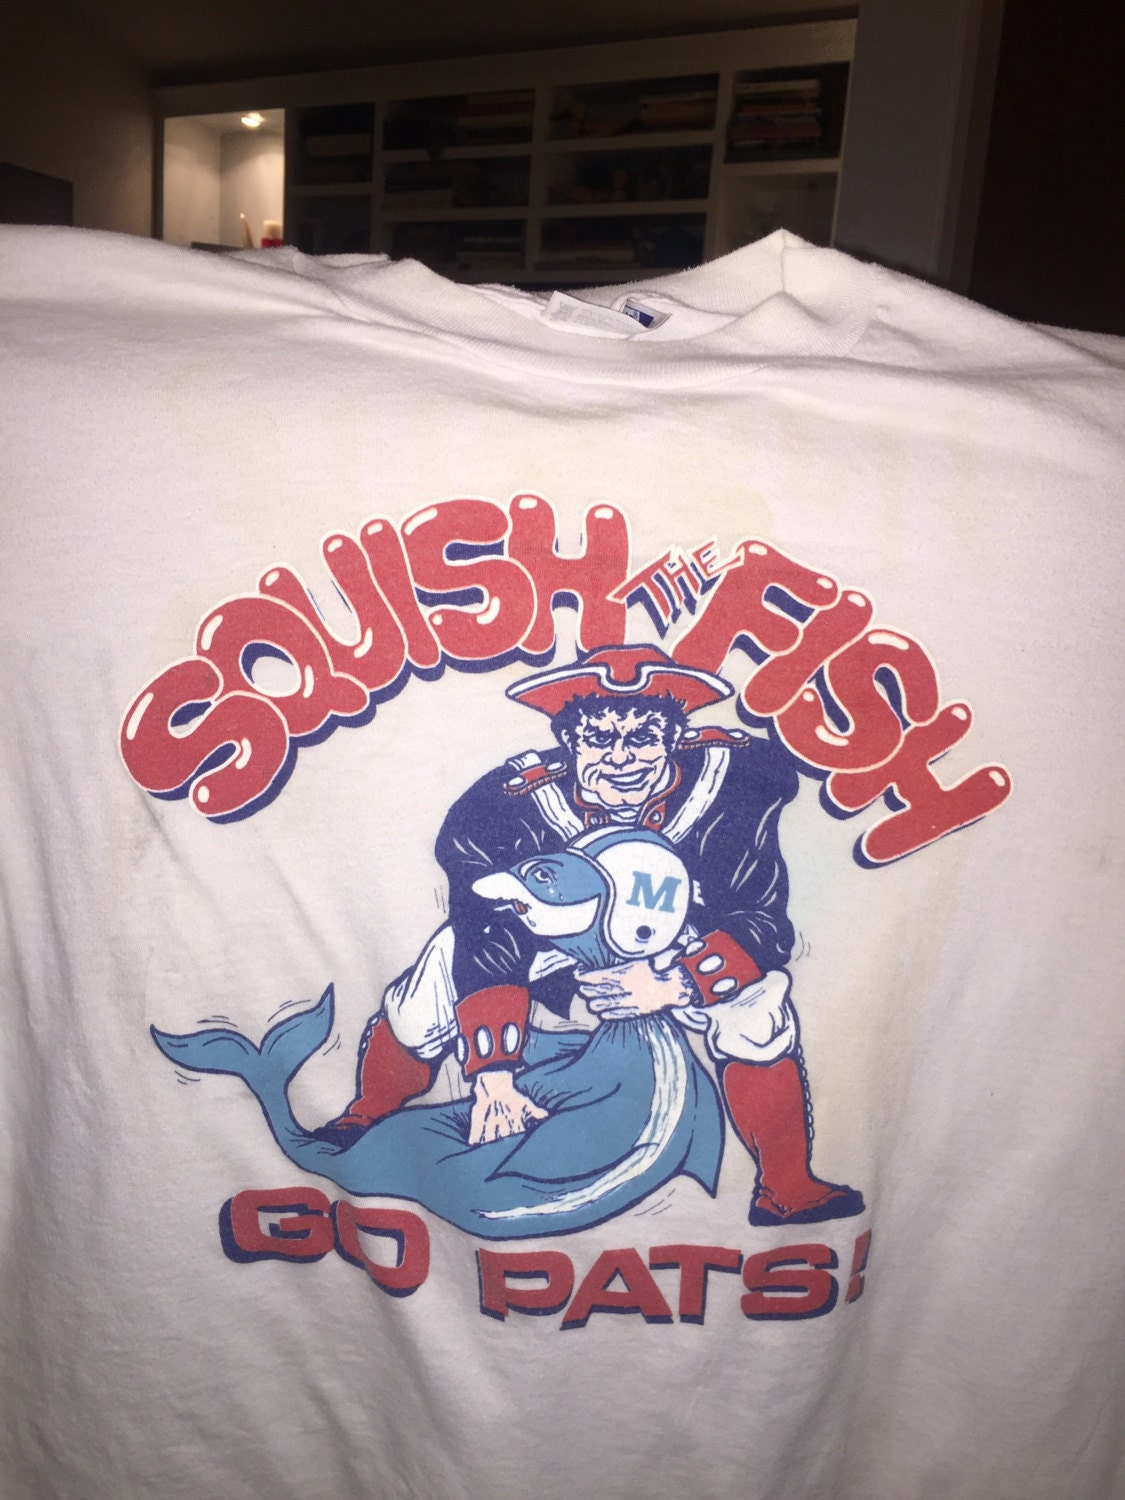 Vintage patriots t shirt squish the fish by oddfellowsbox for Squish the fish